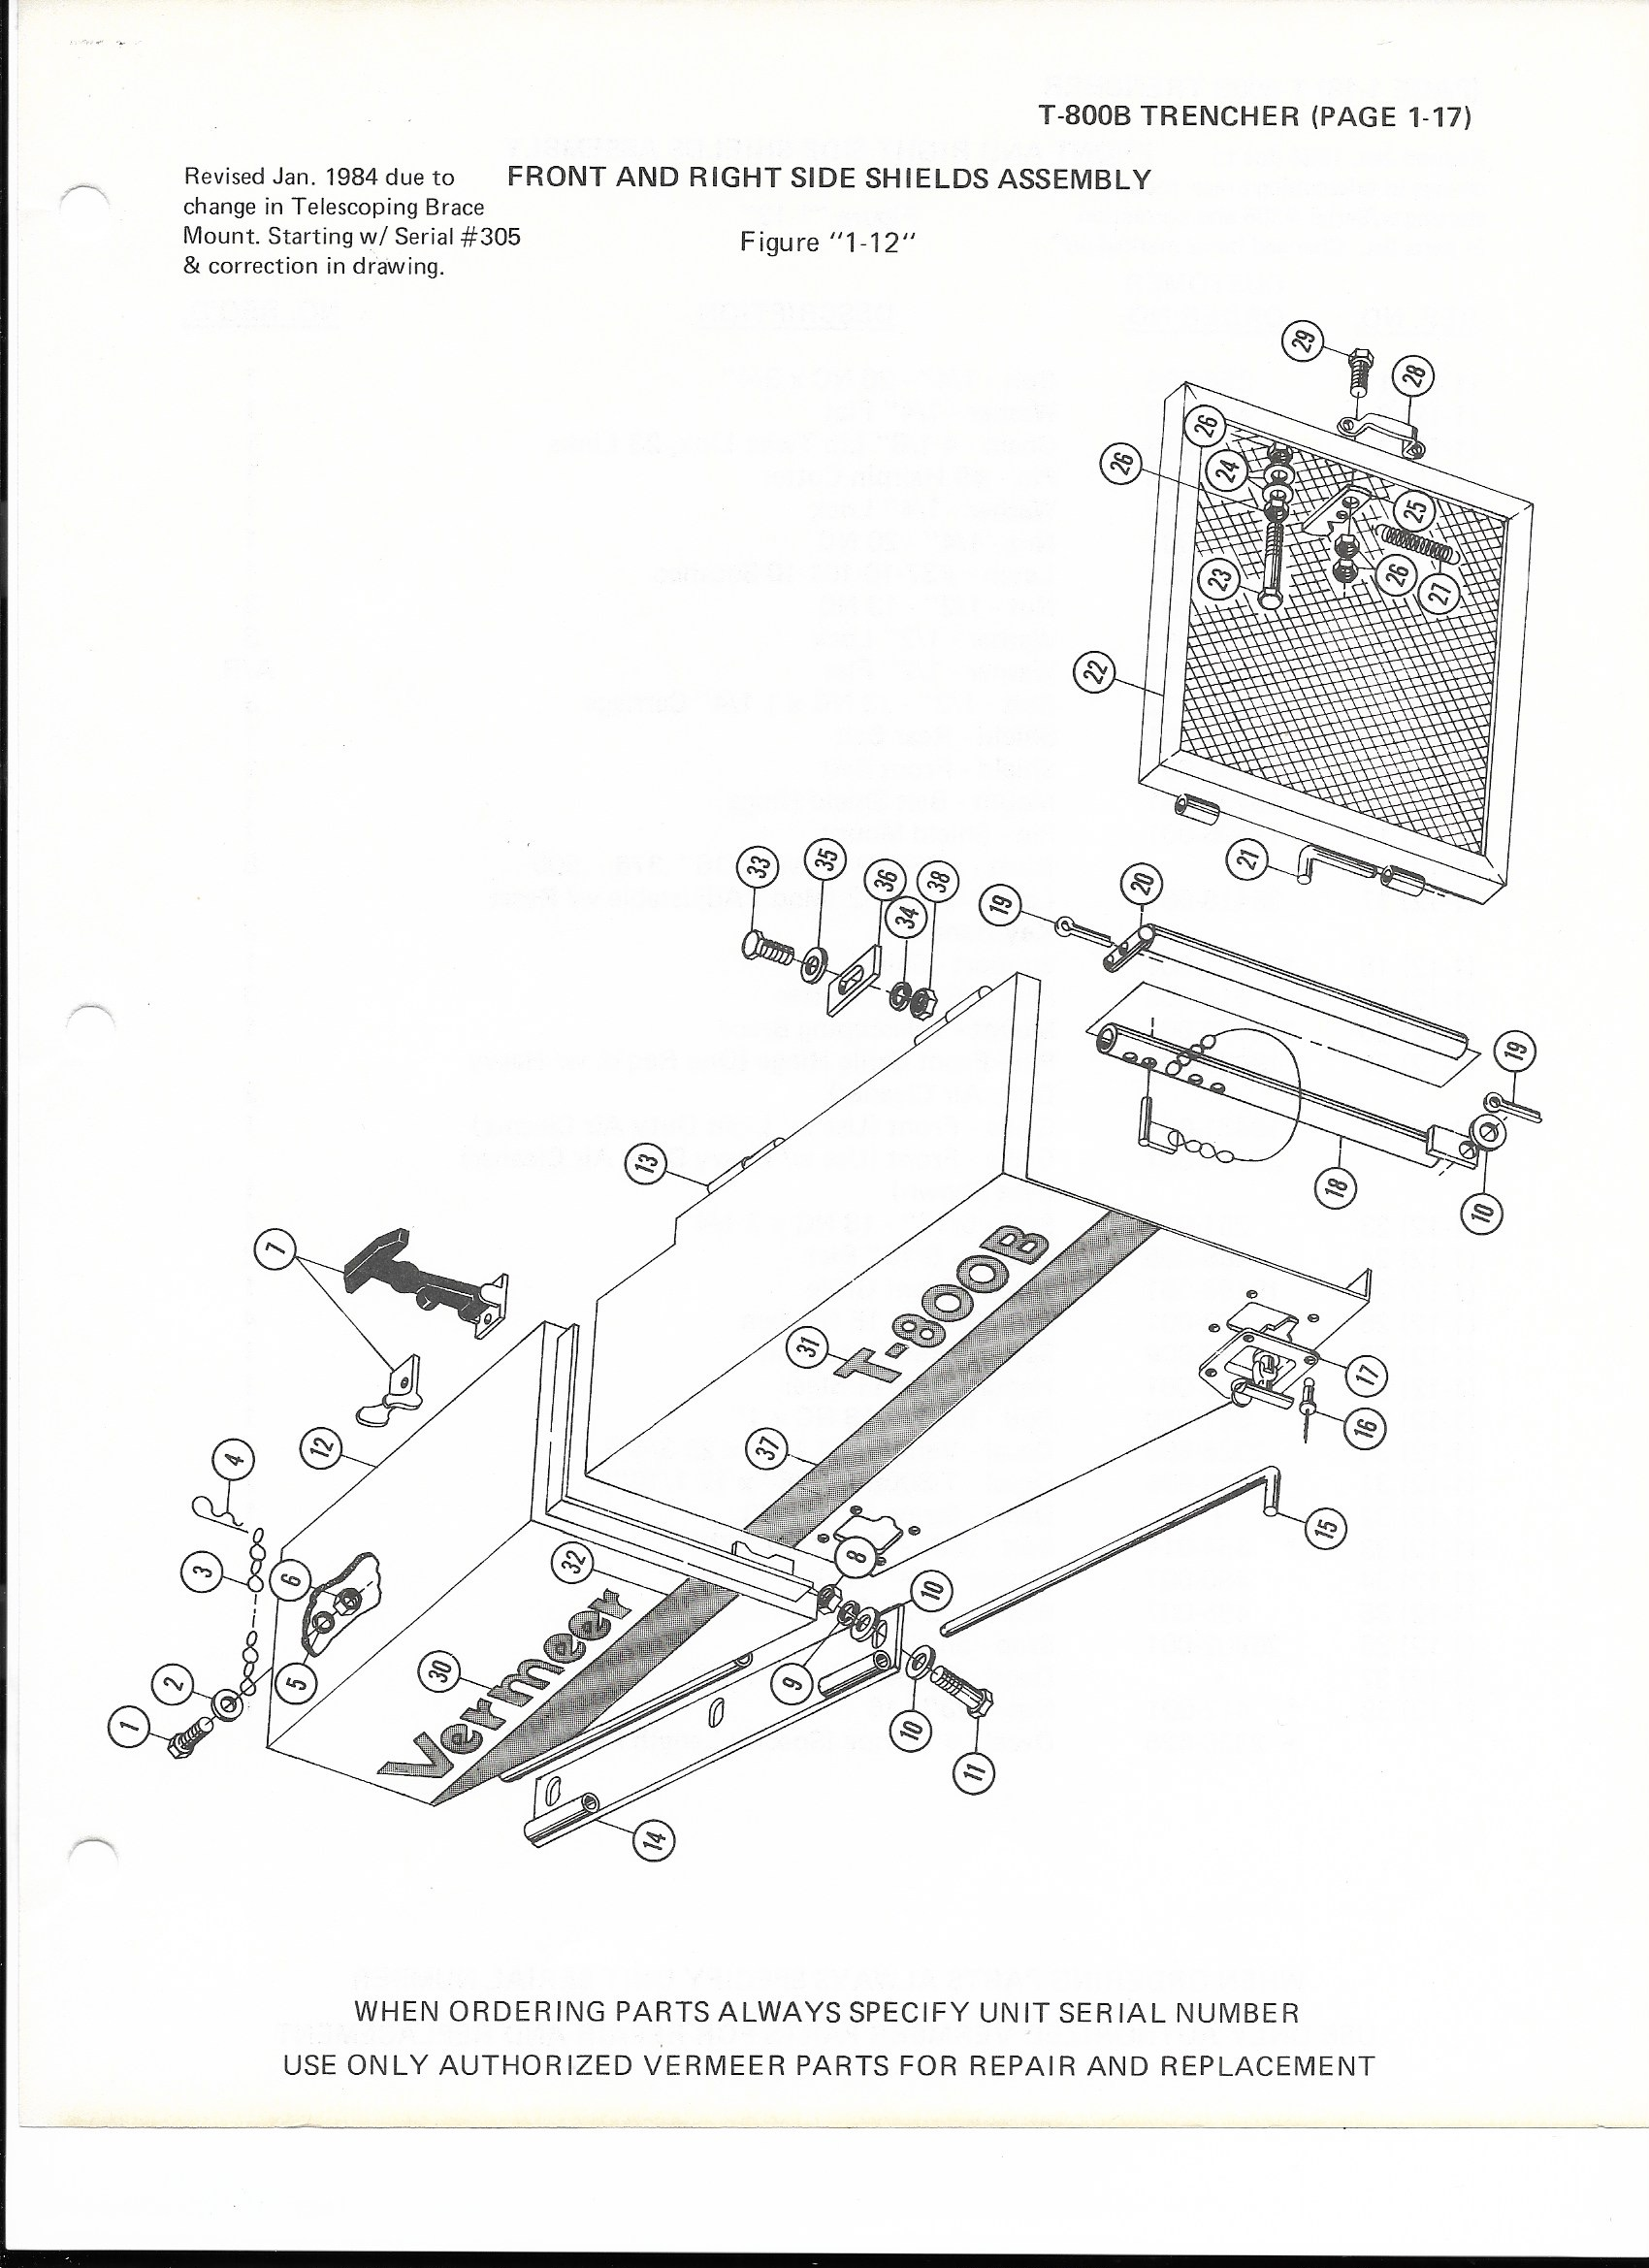 VERMEER T-800 - FRONT AND RIGHT SIDE ASSEMBLY